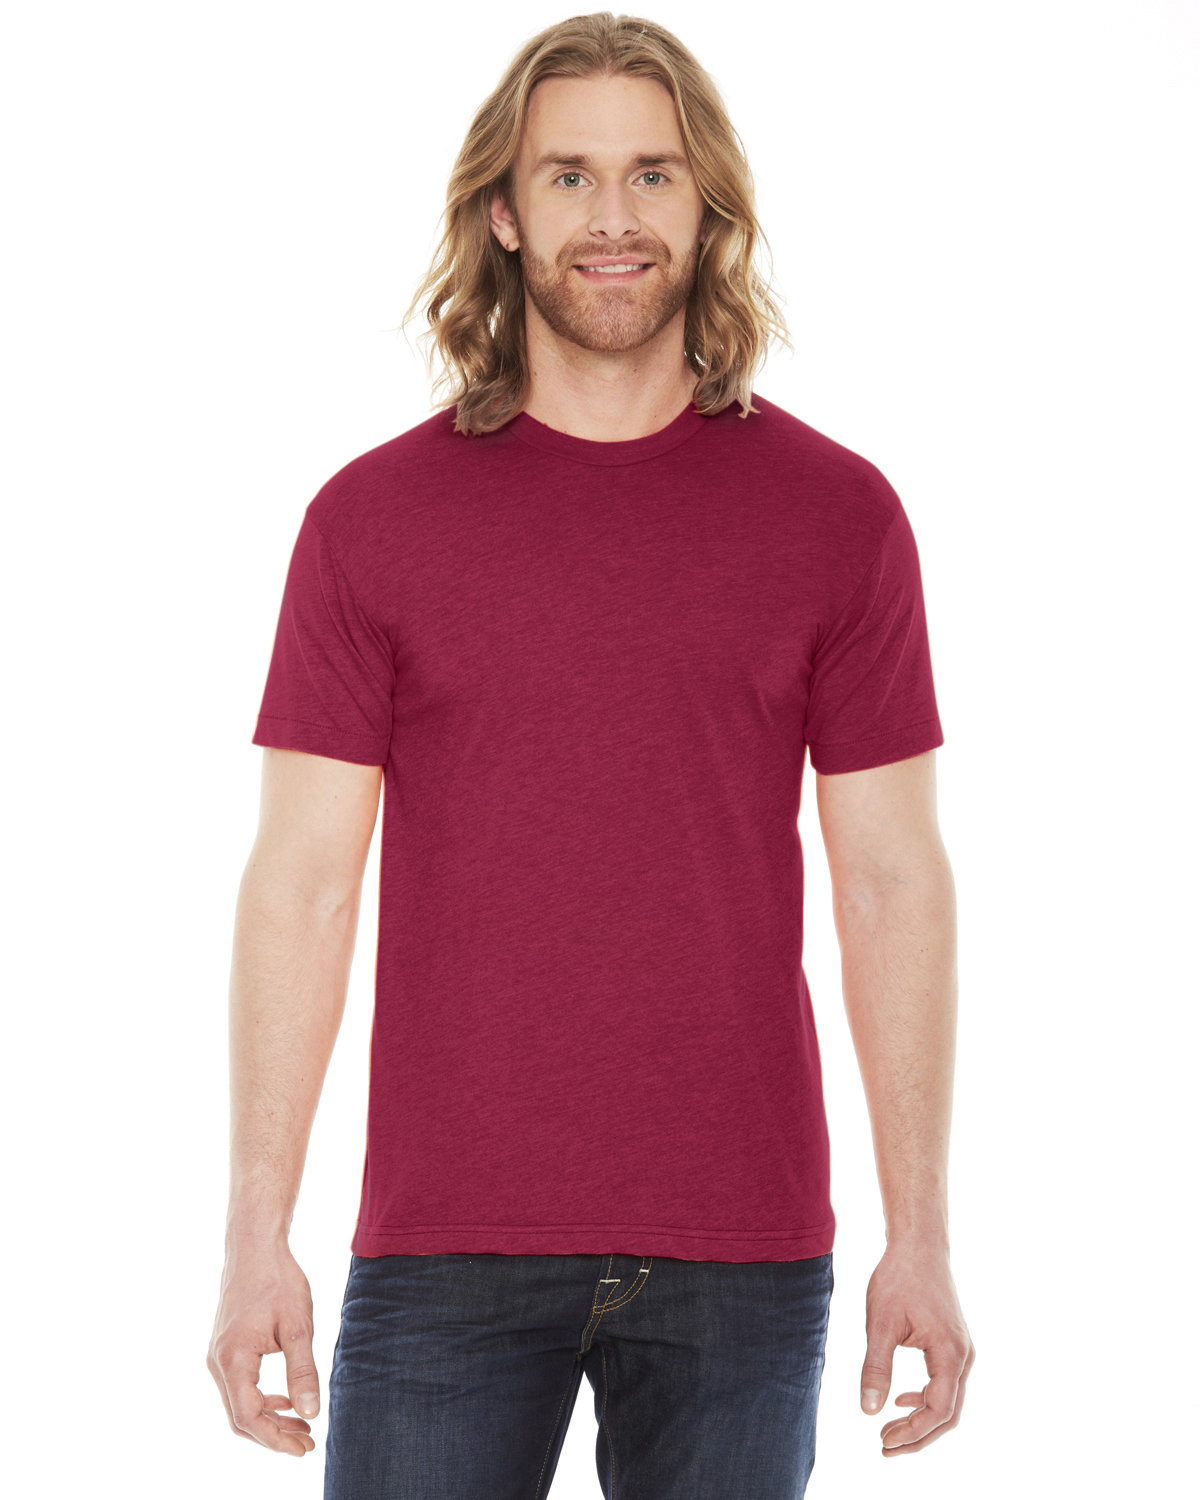 American Apparel Unisex Poly-Cotton USAMade Crewneck T-Shirt HEATHER RED